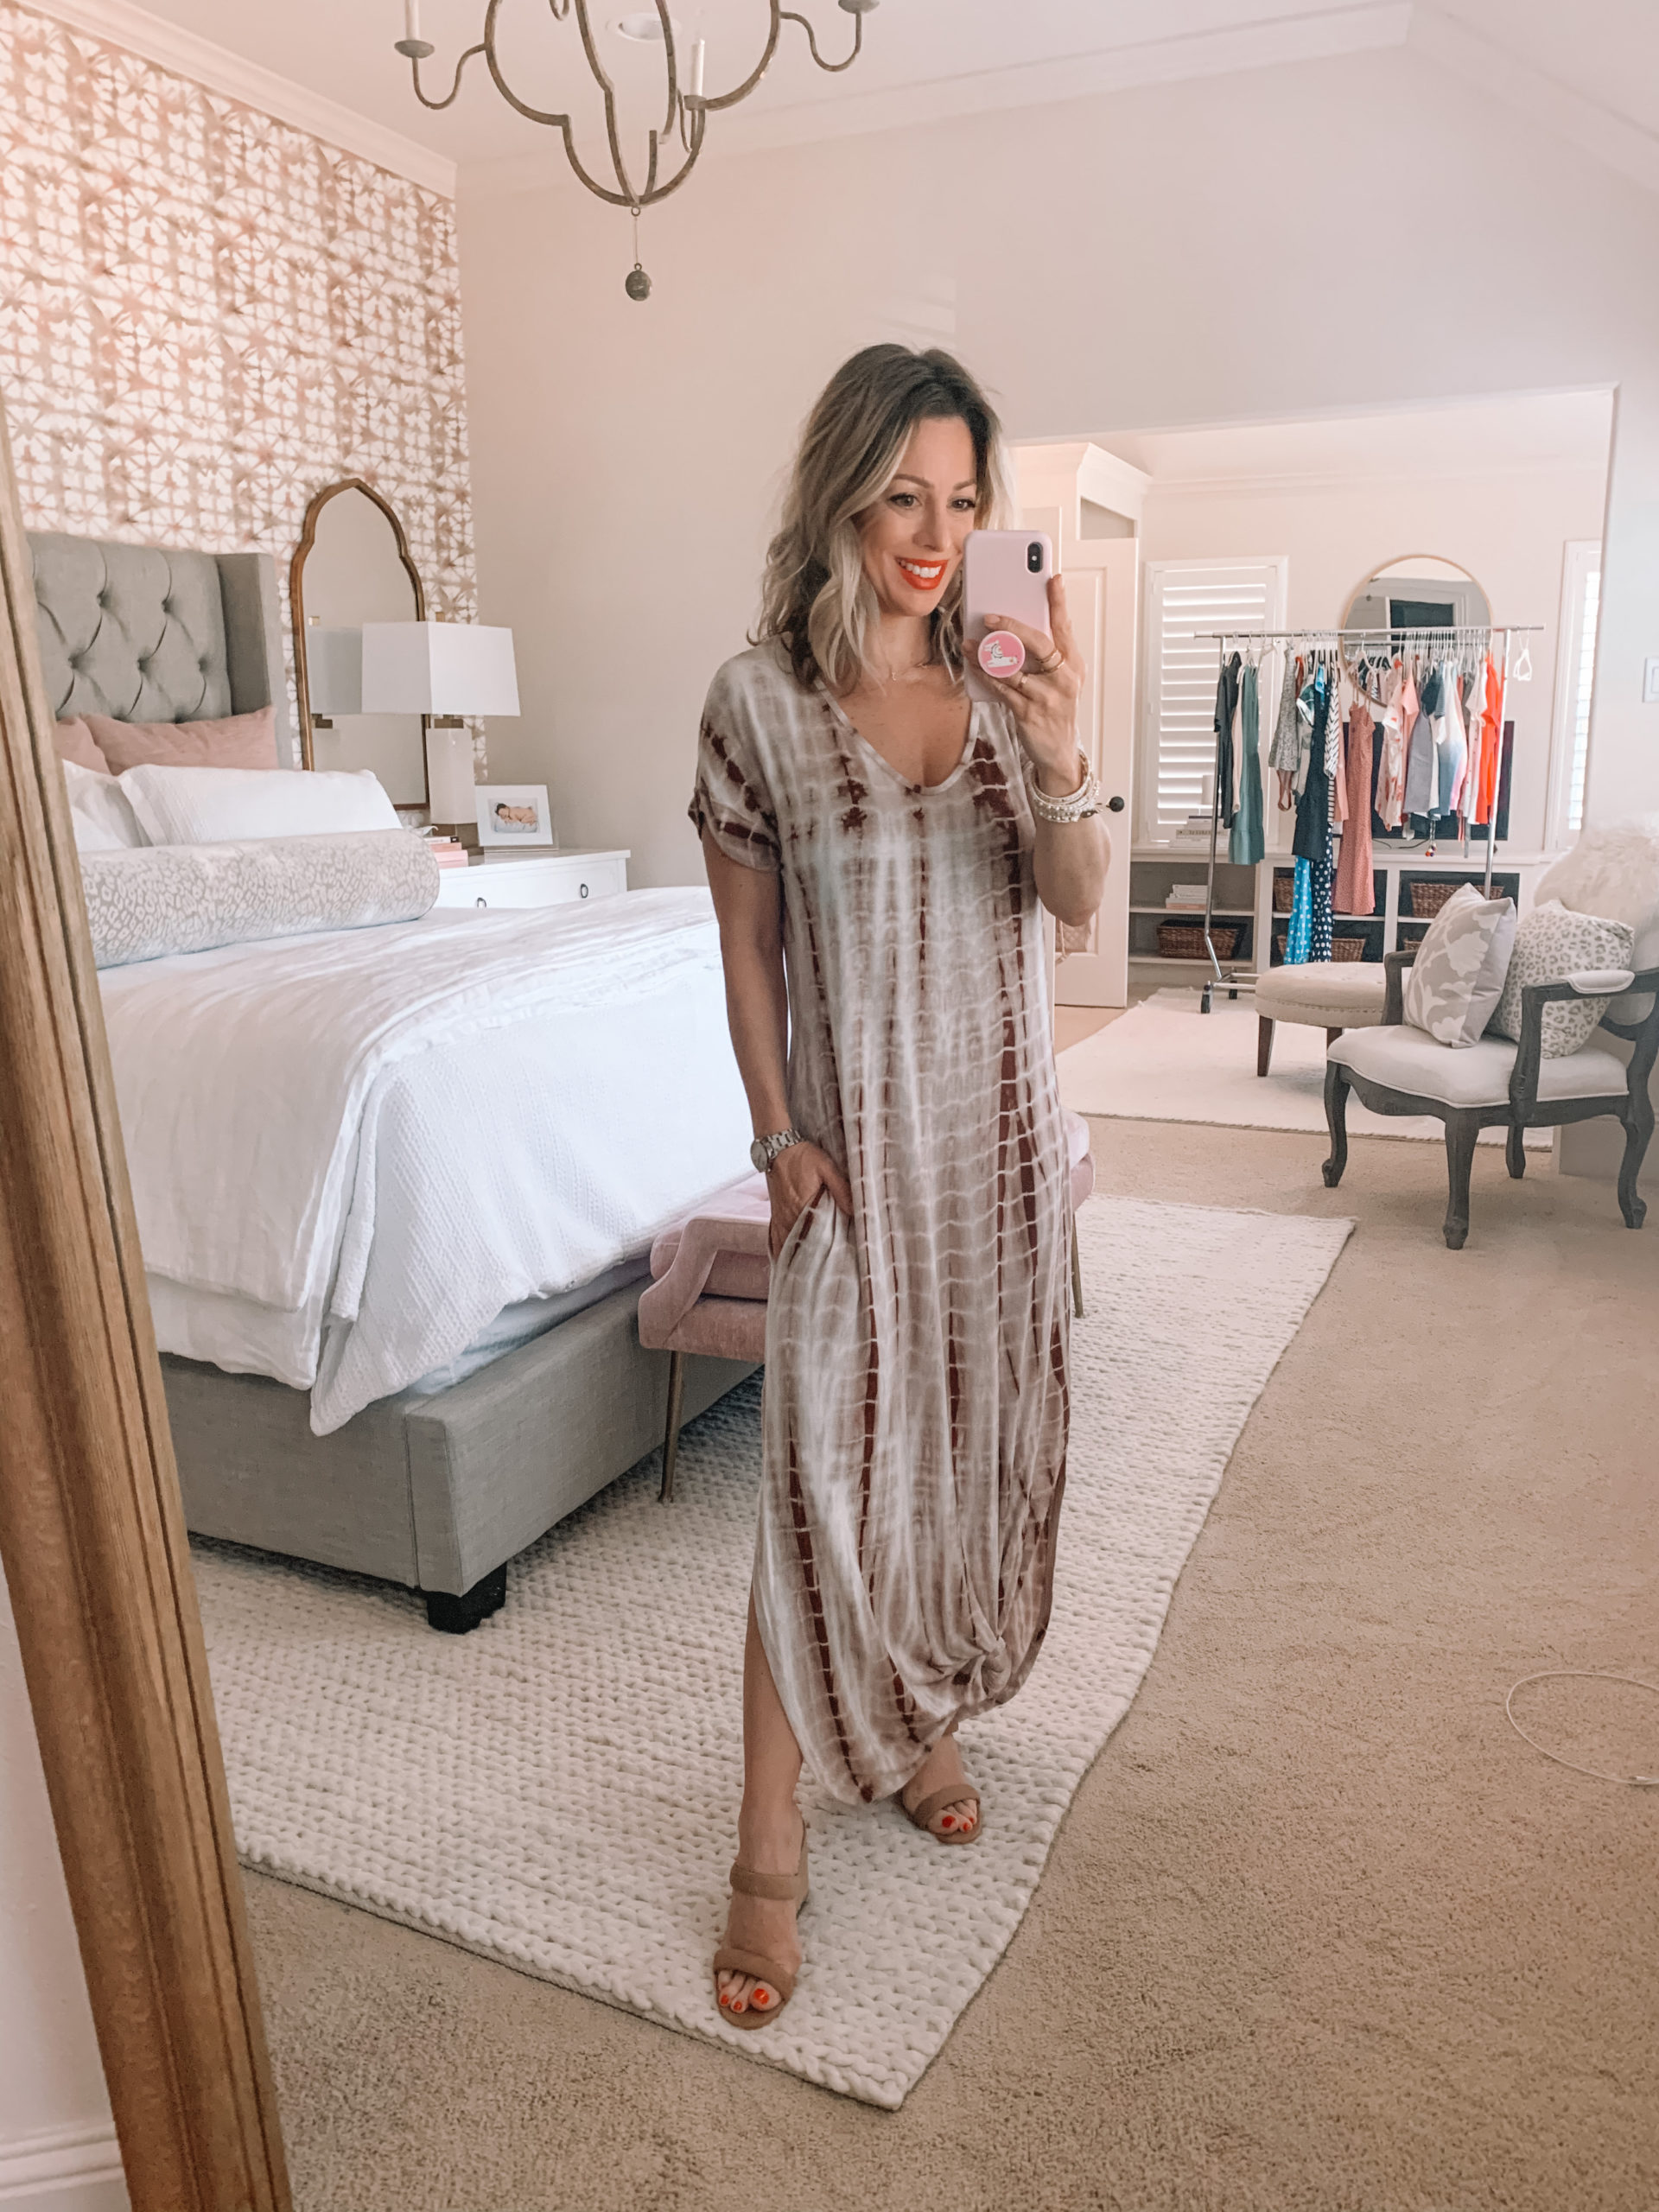 Amazon Fashion - Tie Dye Maxi dress, White Sandals